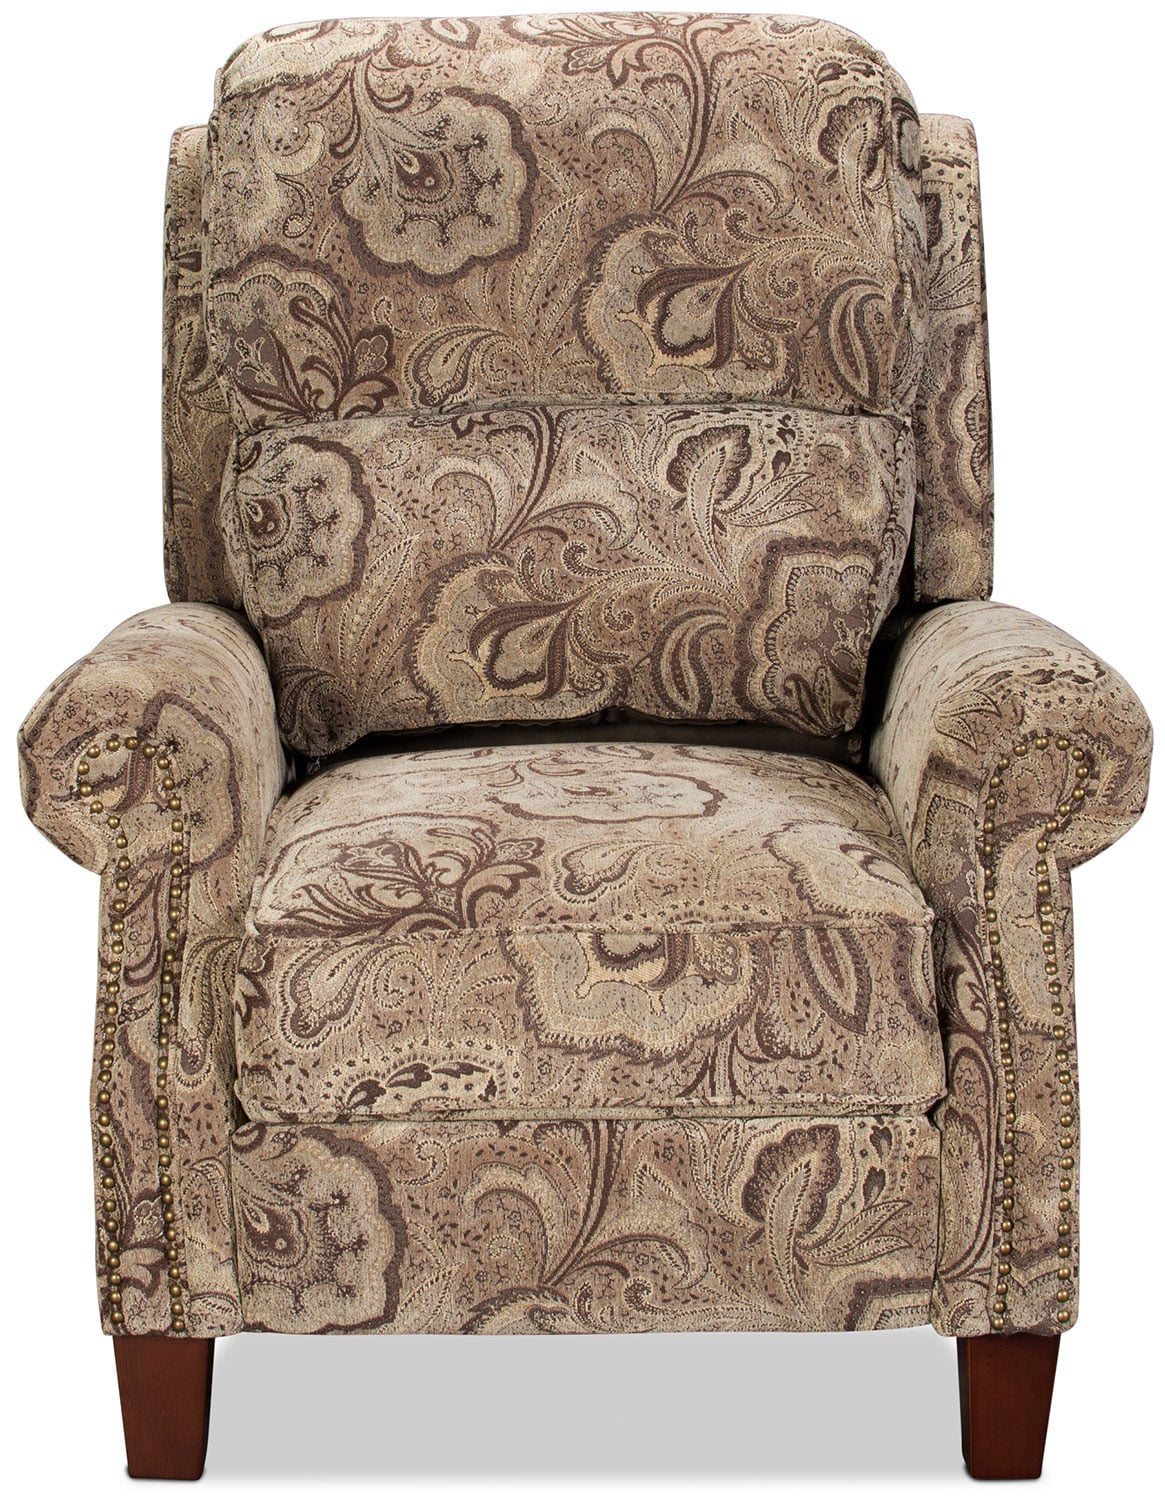 black and white paisley chair gripper pads recliners rockers levin furniture